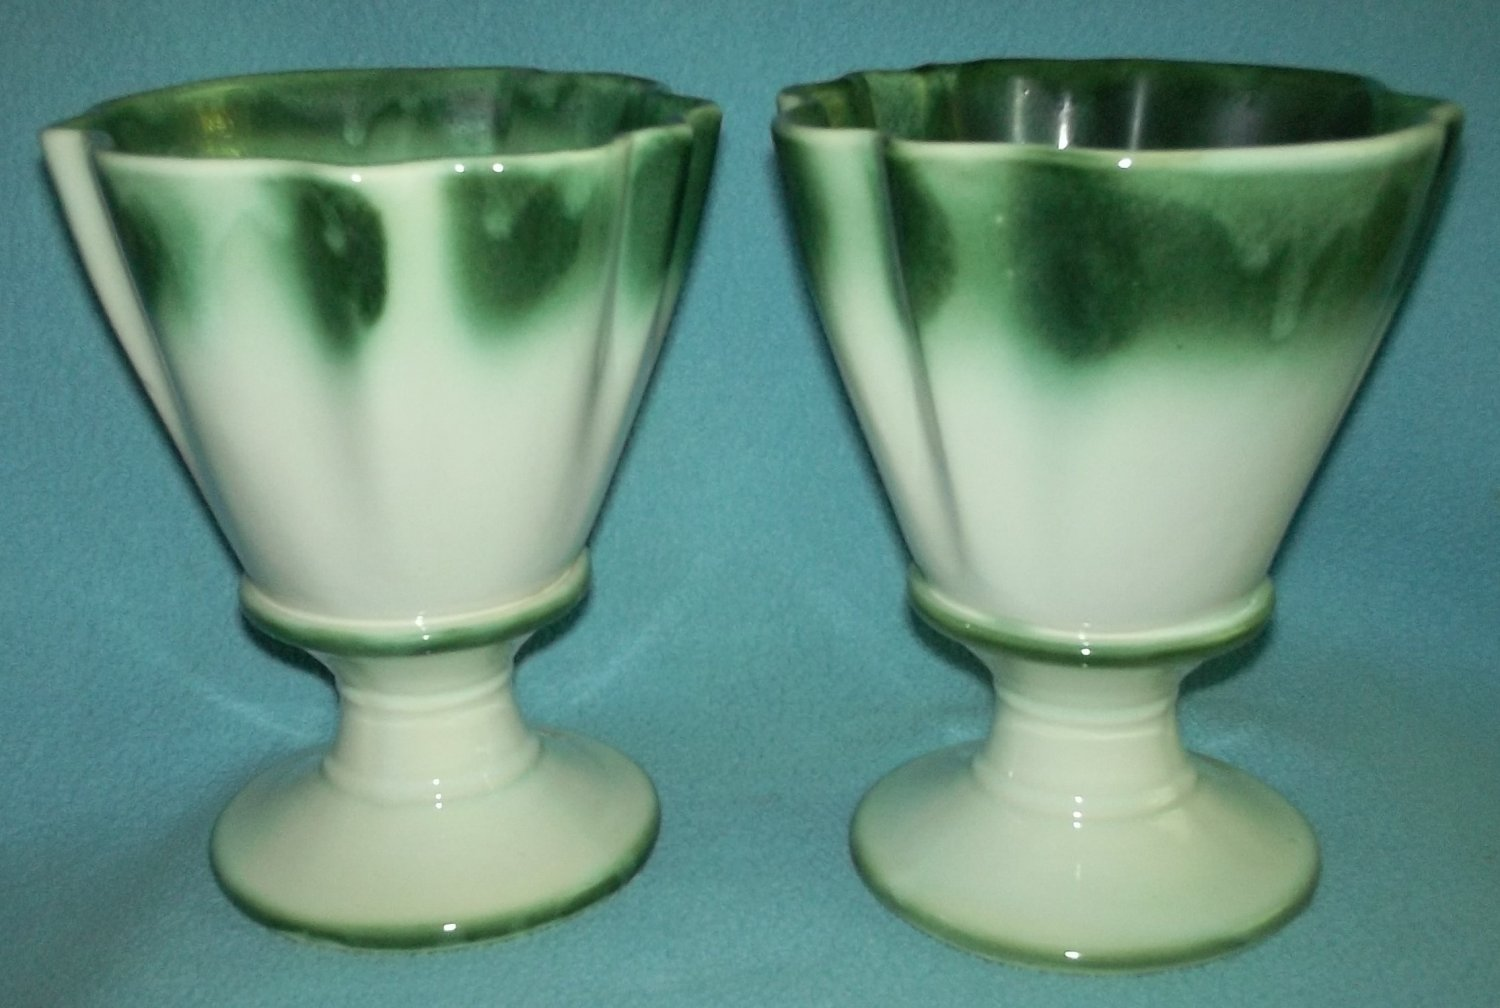 Vintage HULL REGAL ART POTTERY Fluted Vases SET (2) Planters GREEN WHITE Beautiful for Mantel